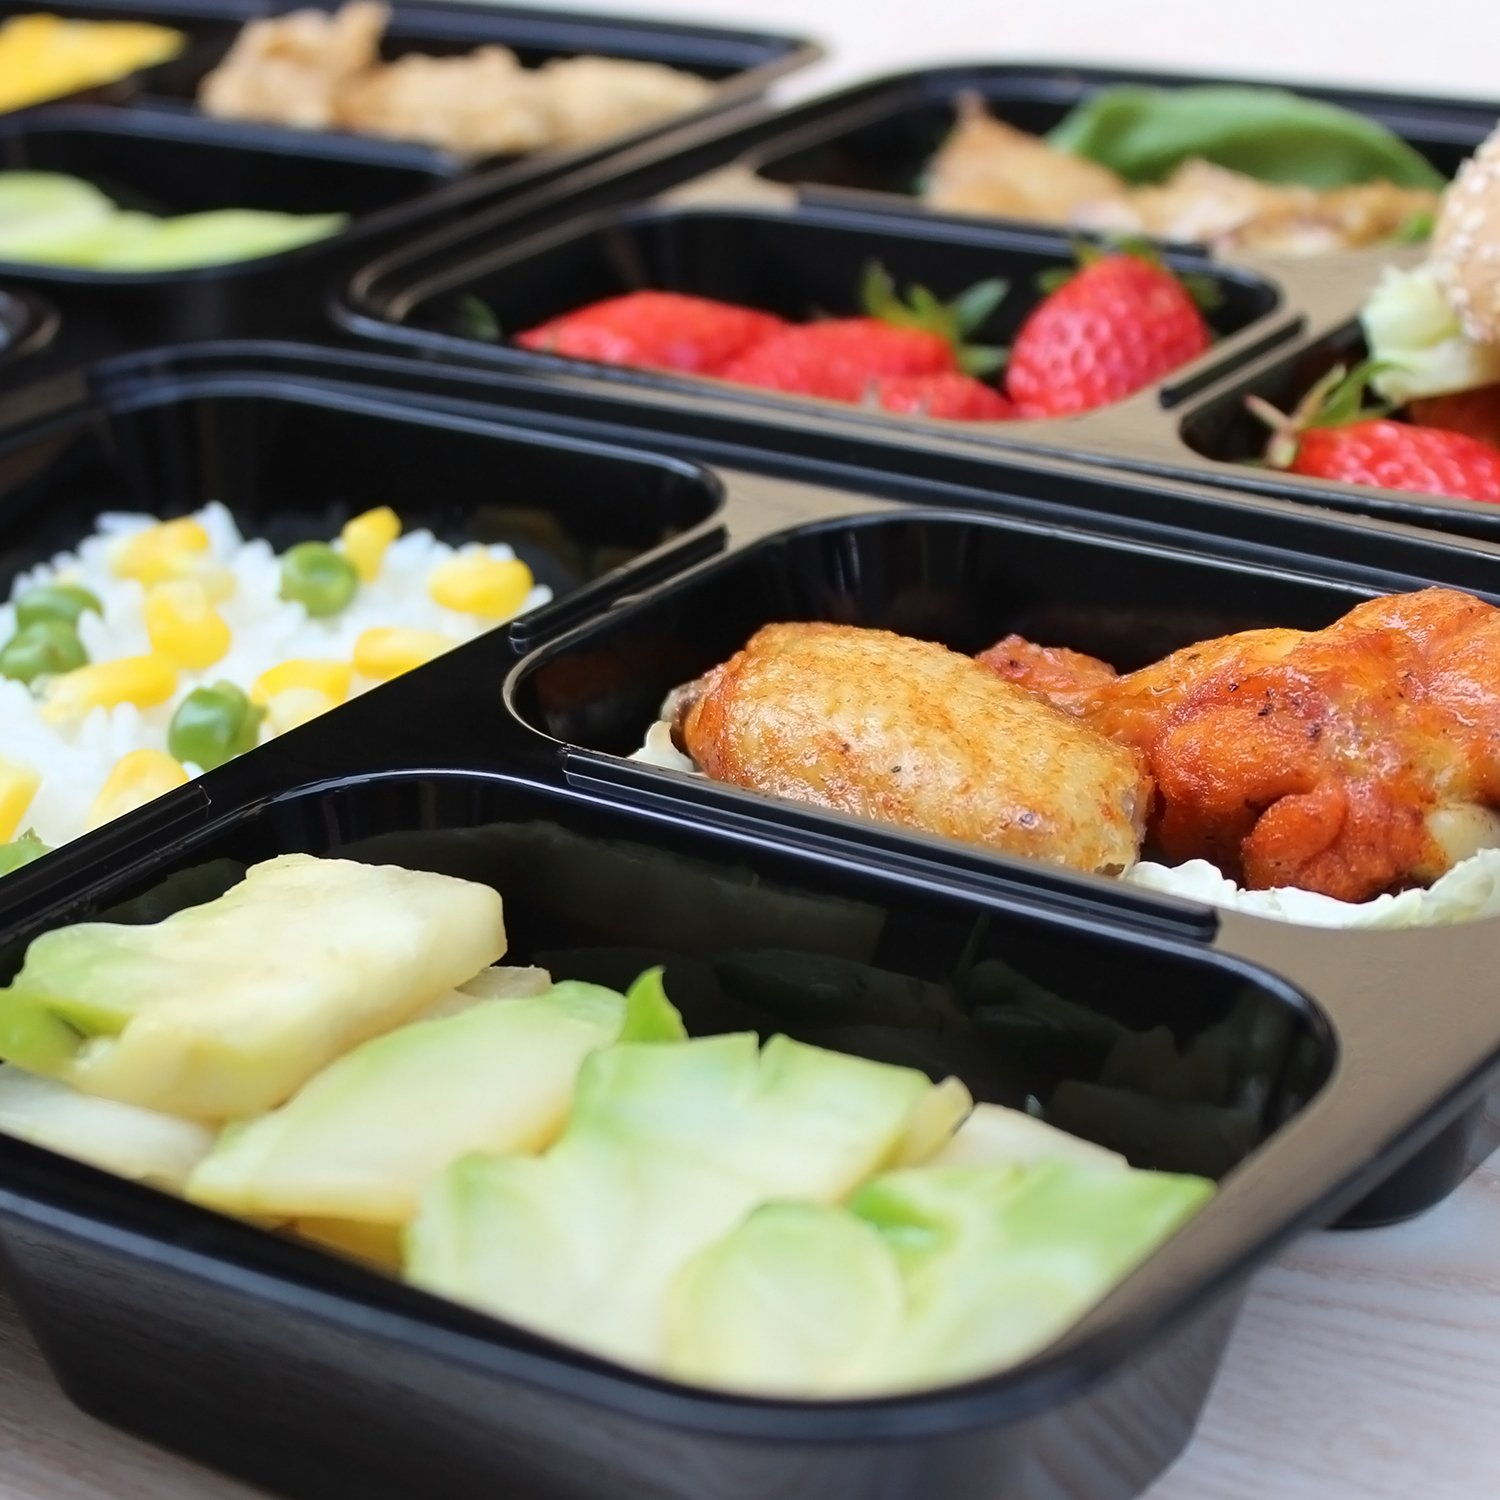 Enther Meal Prep Containers [20 Pack] 3 Compartment with Lids, Food Storage Bento Box   BPA Free   Stackable   Reusable Lunch Boxes, Microwave/Dishwasher/Freezer Safe,Portion Control (36 oz) by Enther (Image #2)